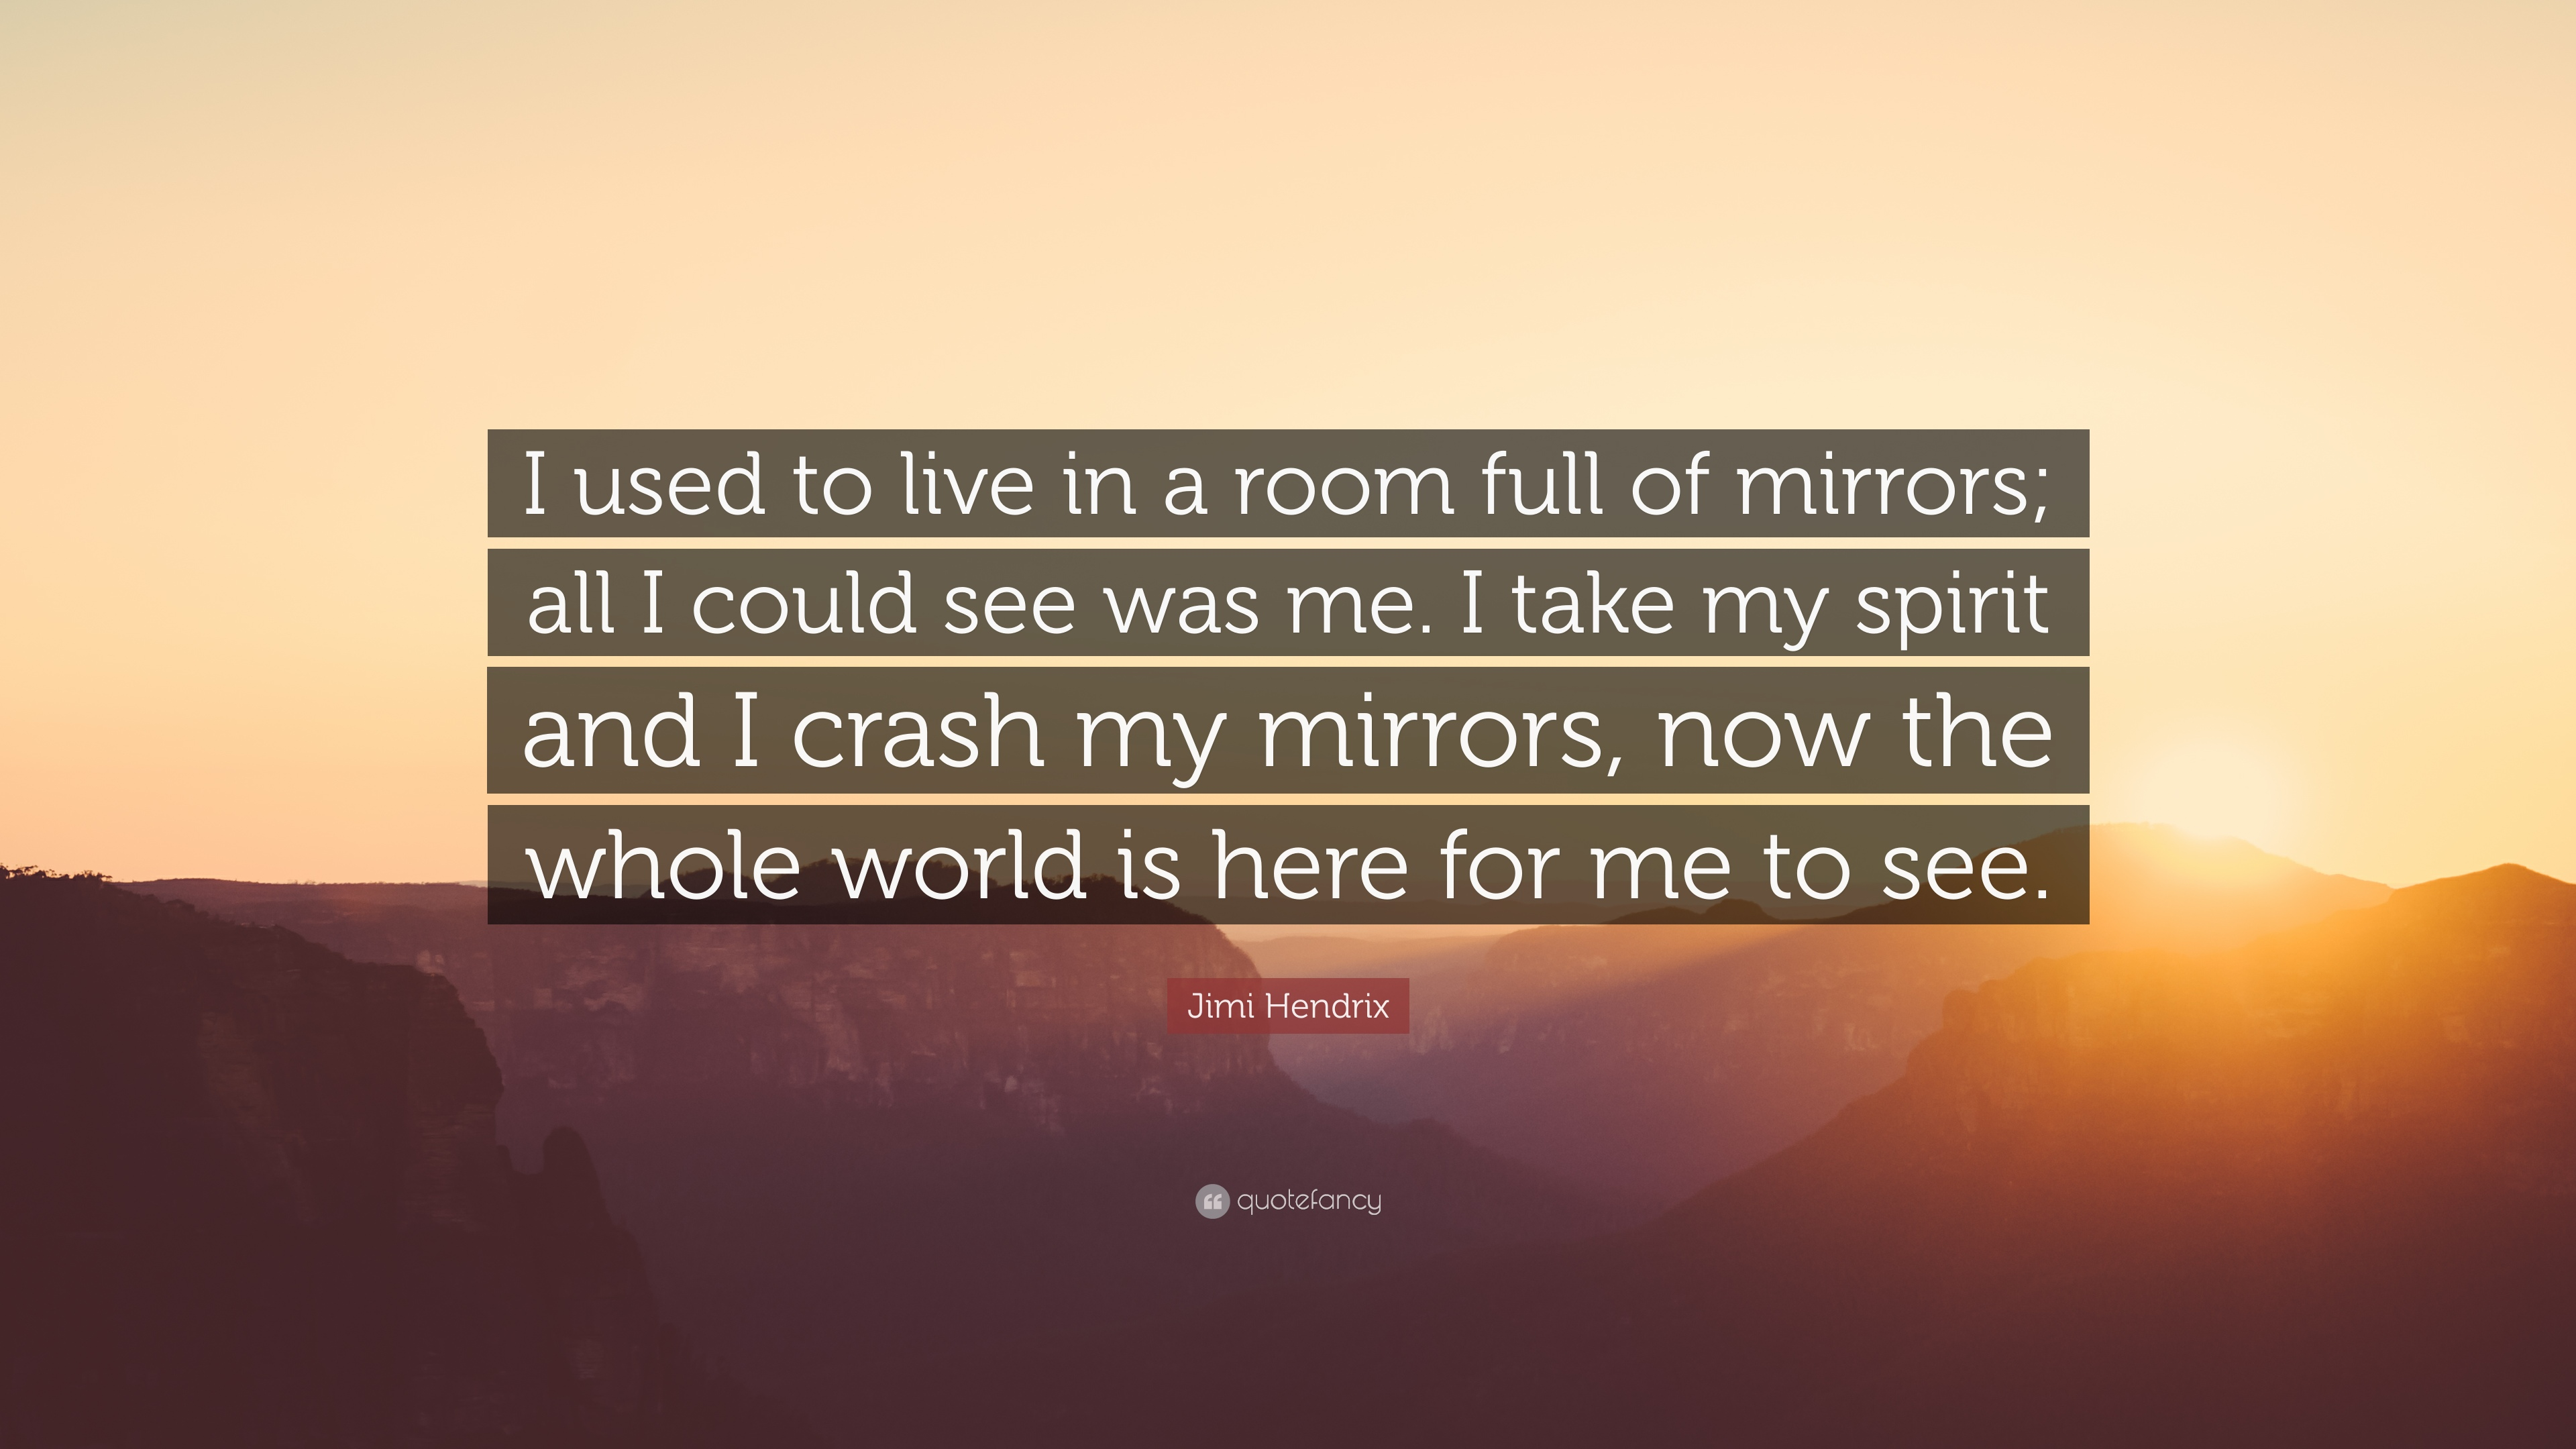 Jimi Hendrix Quote I used to live in a room full of mirrors